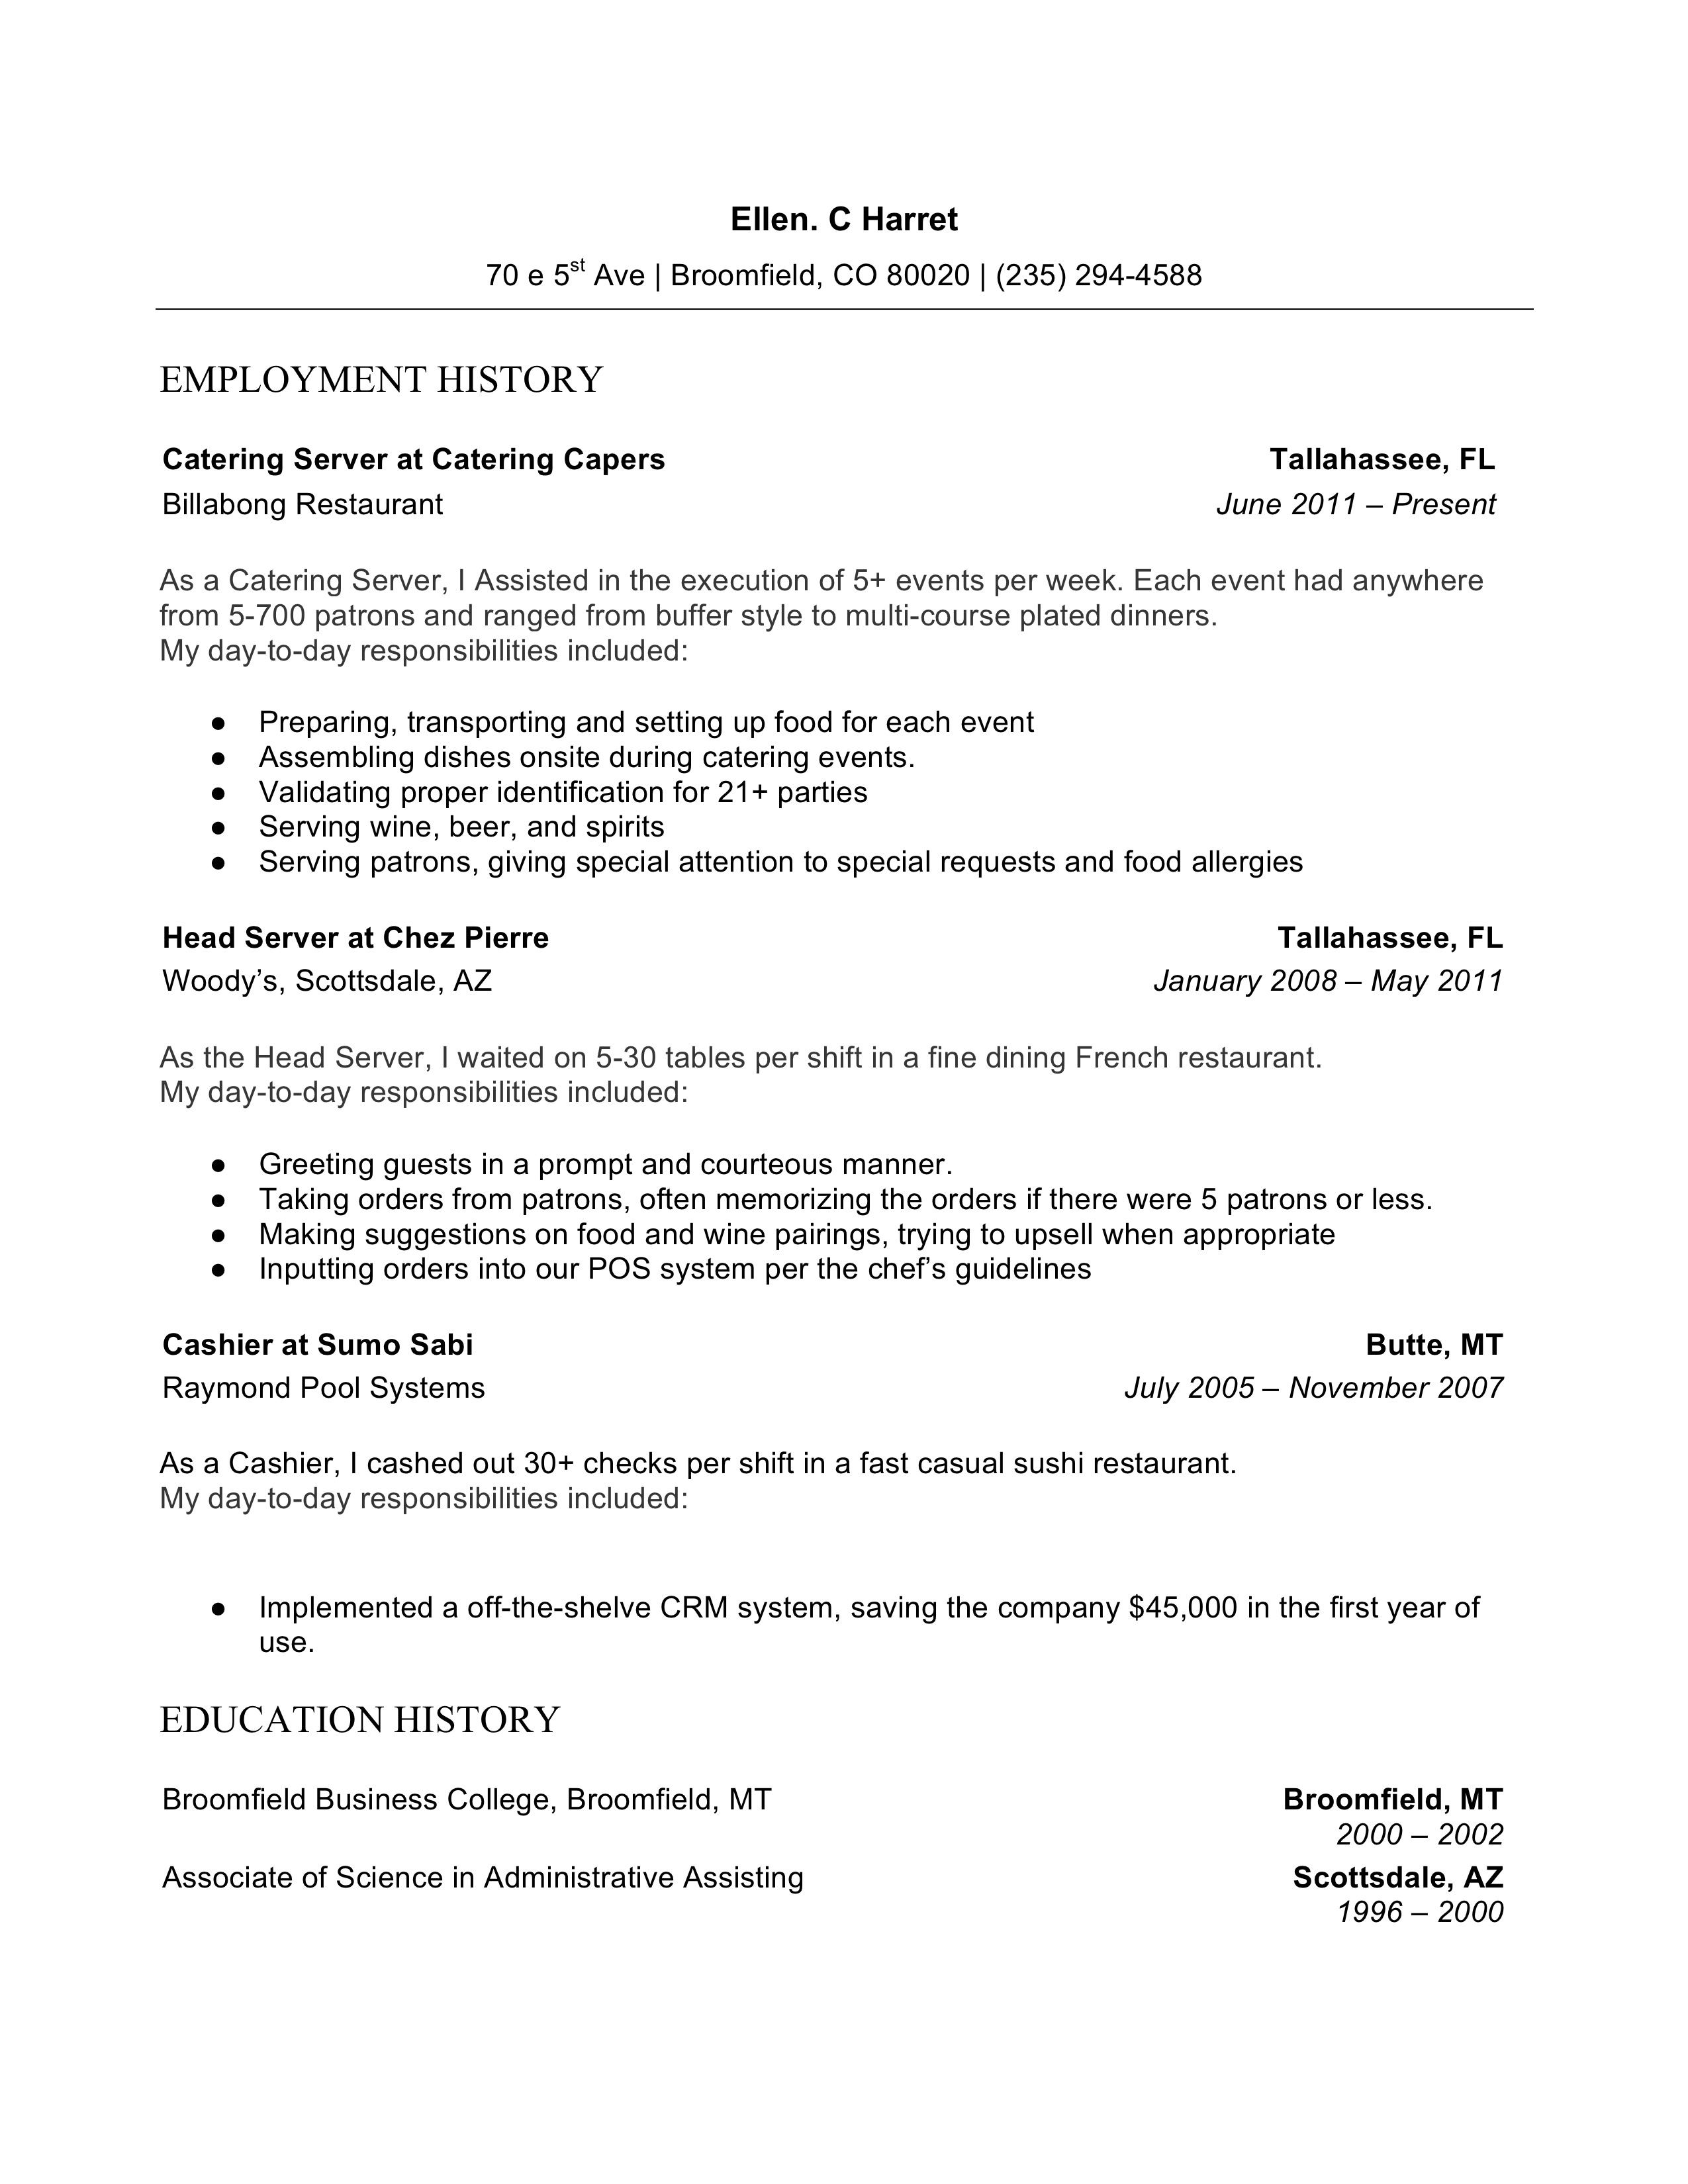 Resume Formats Chronological Functional Combo 2020